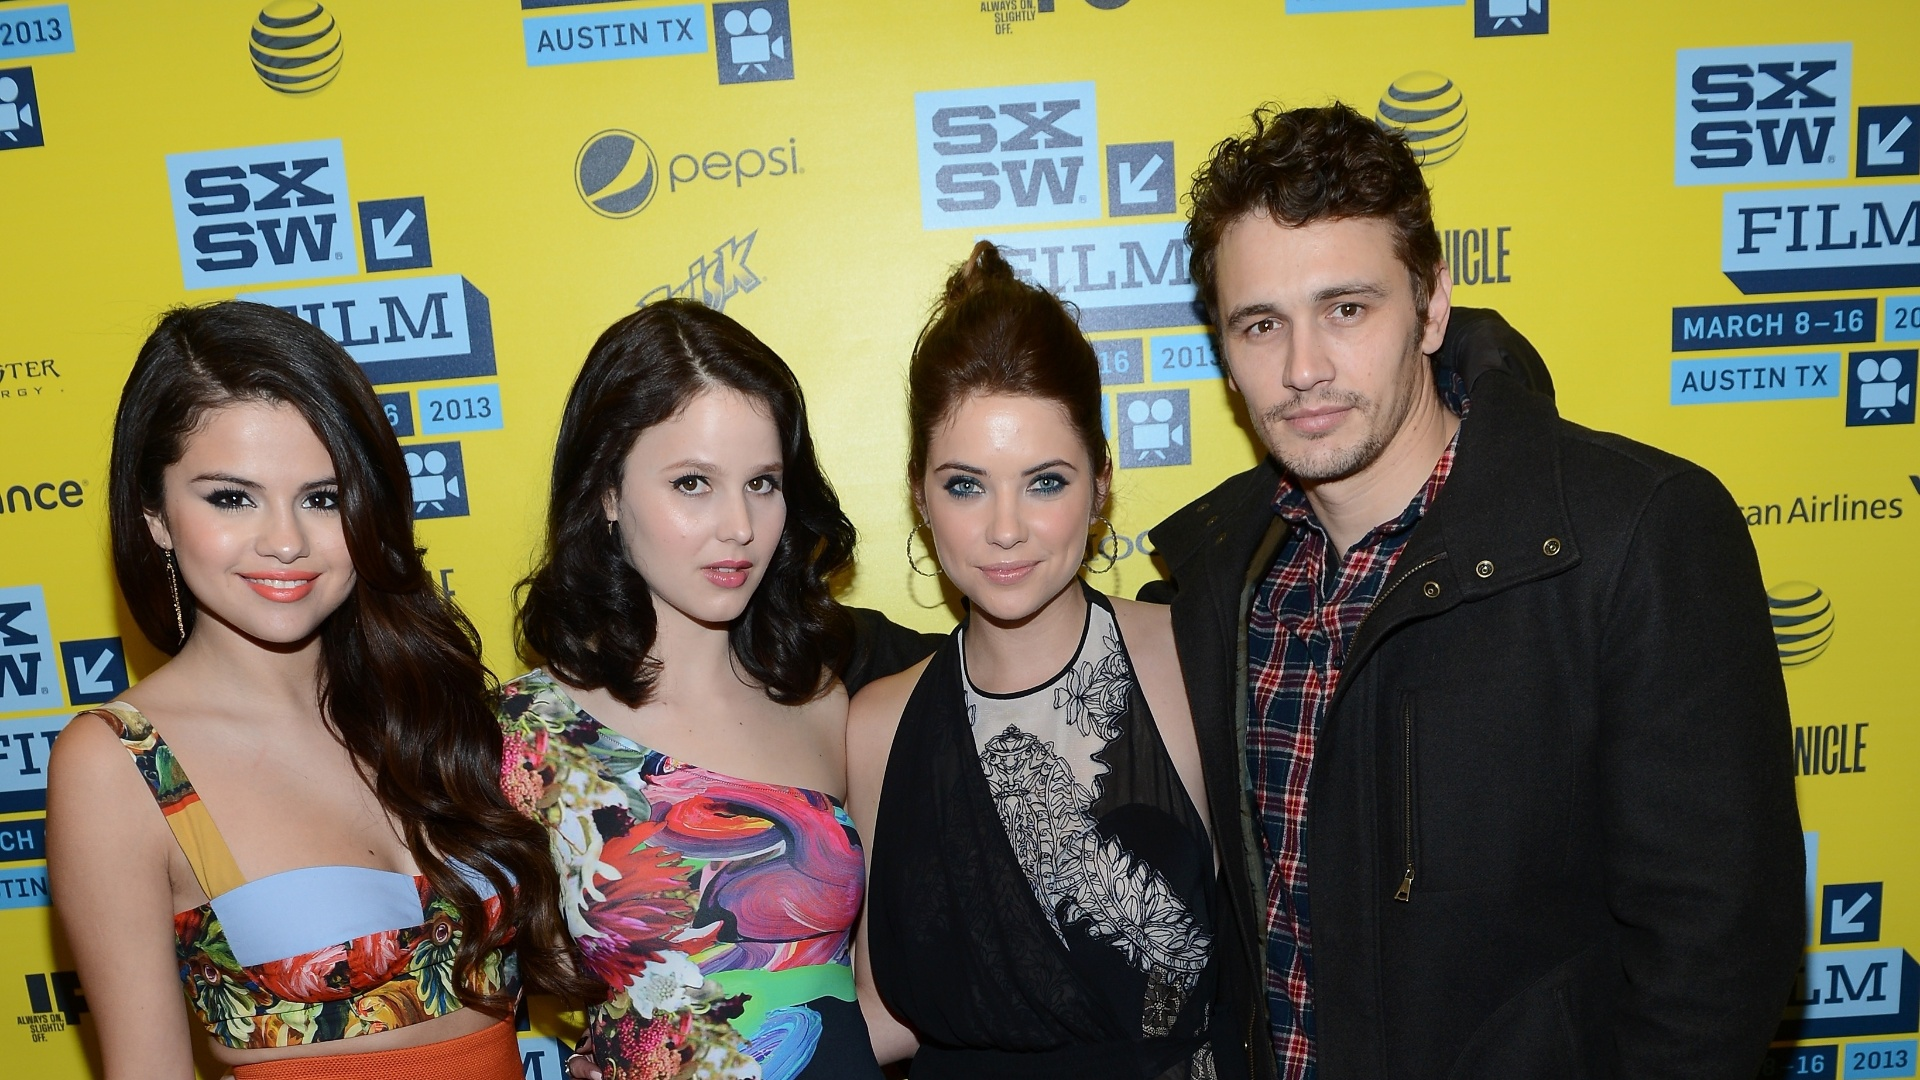 10.mar.2013 - Selena Gomez, Rachel Korine, Ashley Benson e James Franco posam para fotos em evento de exibição do filme